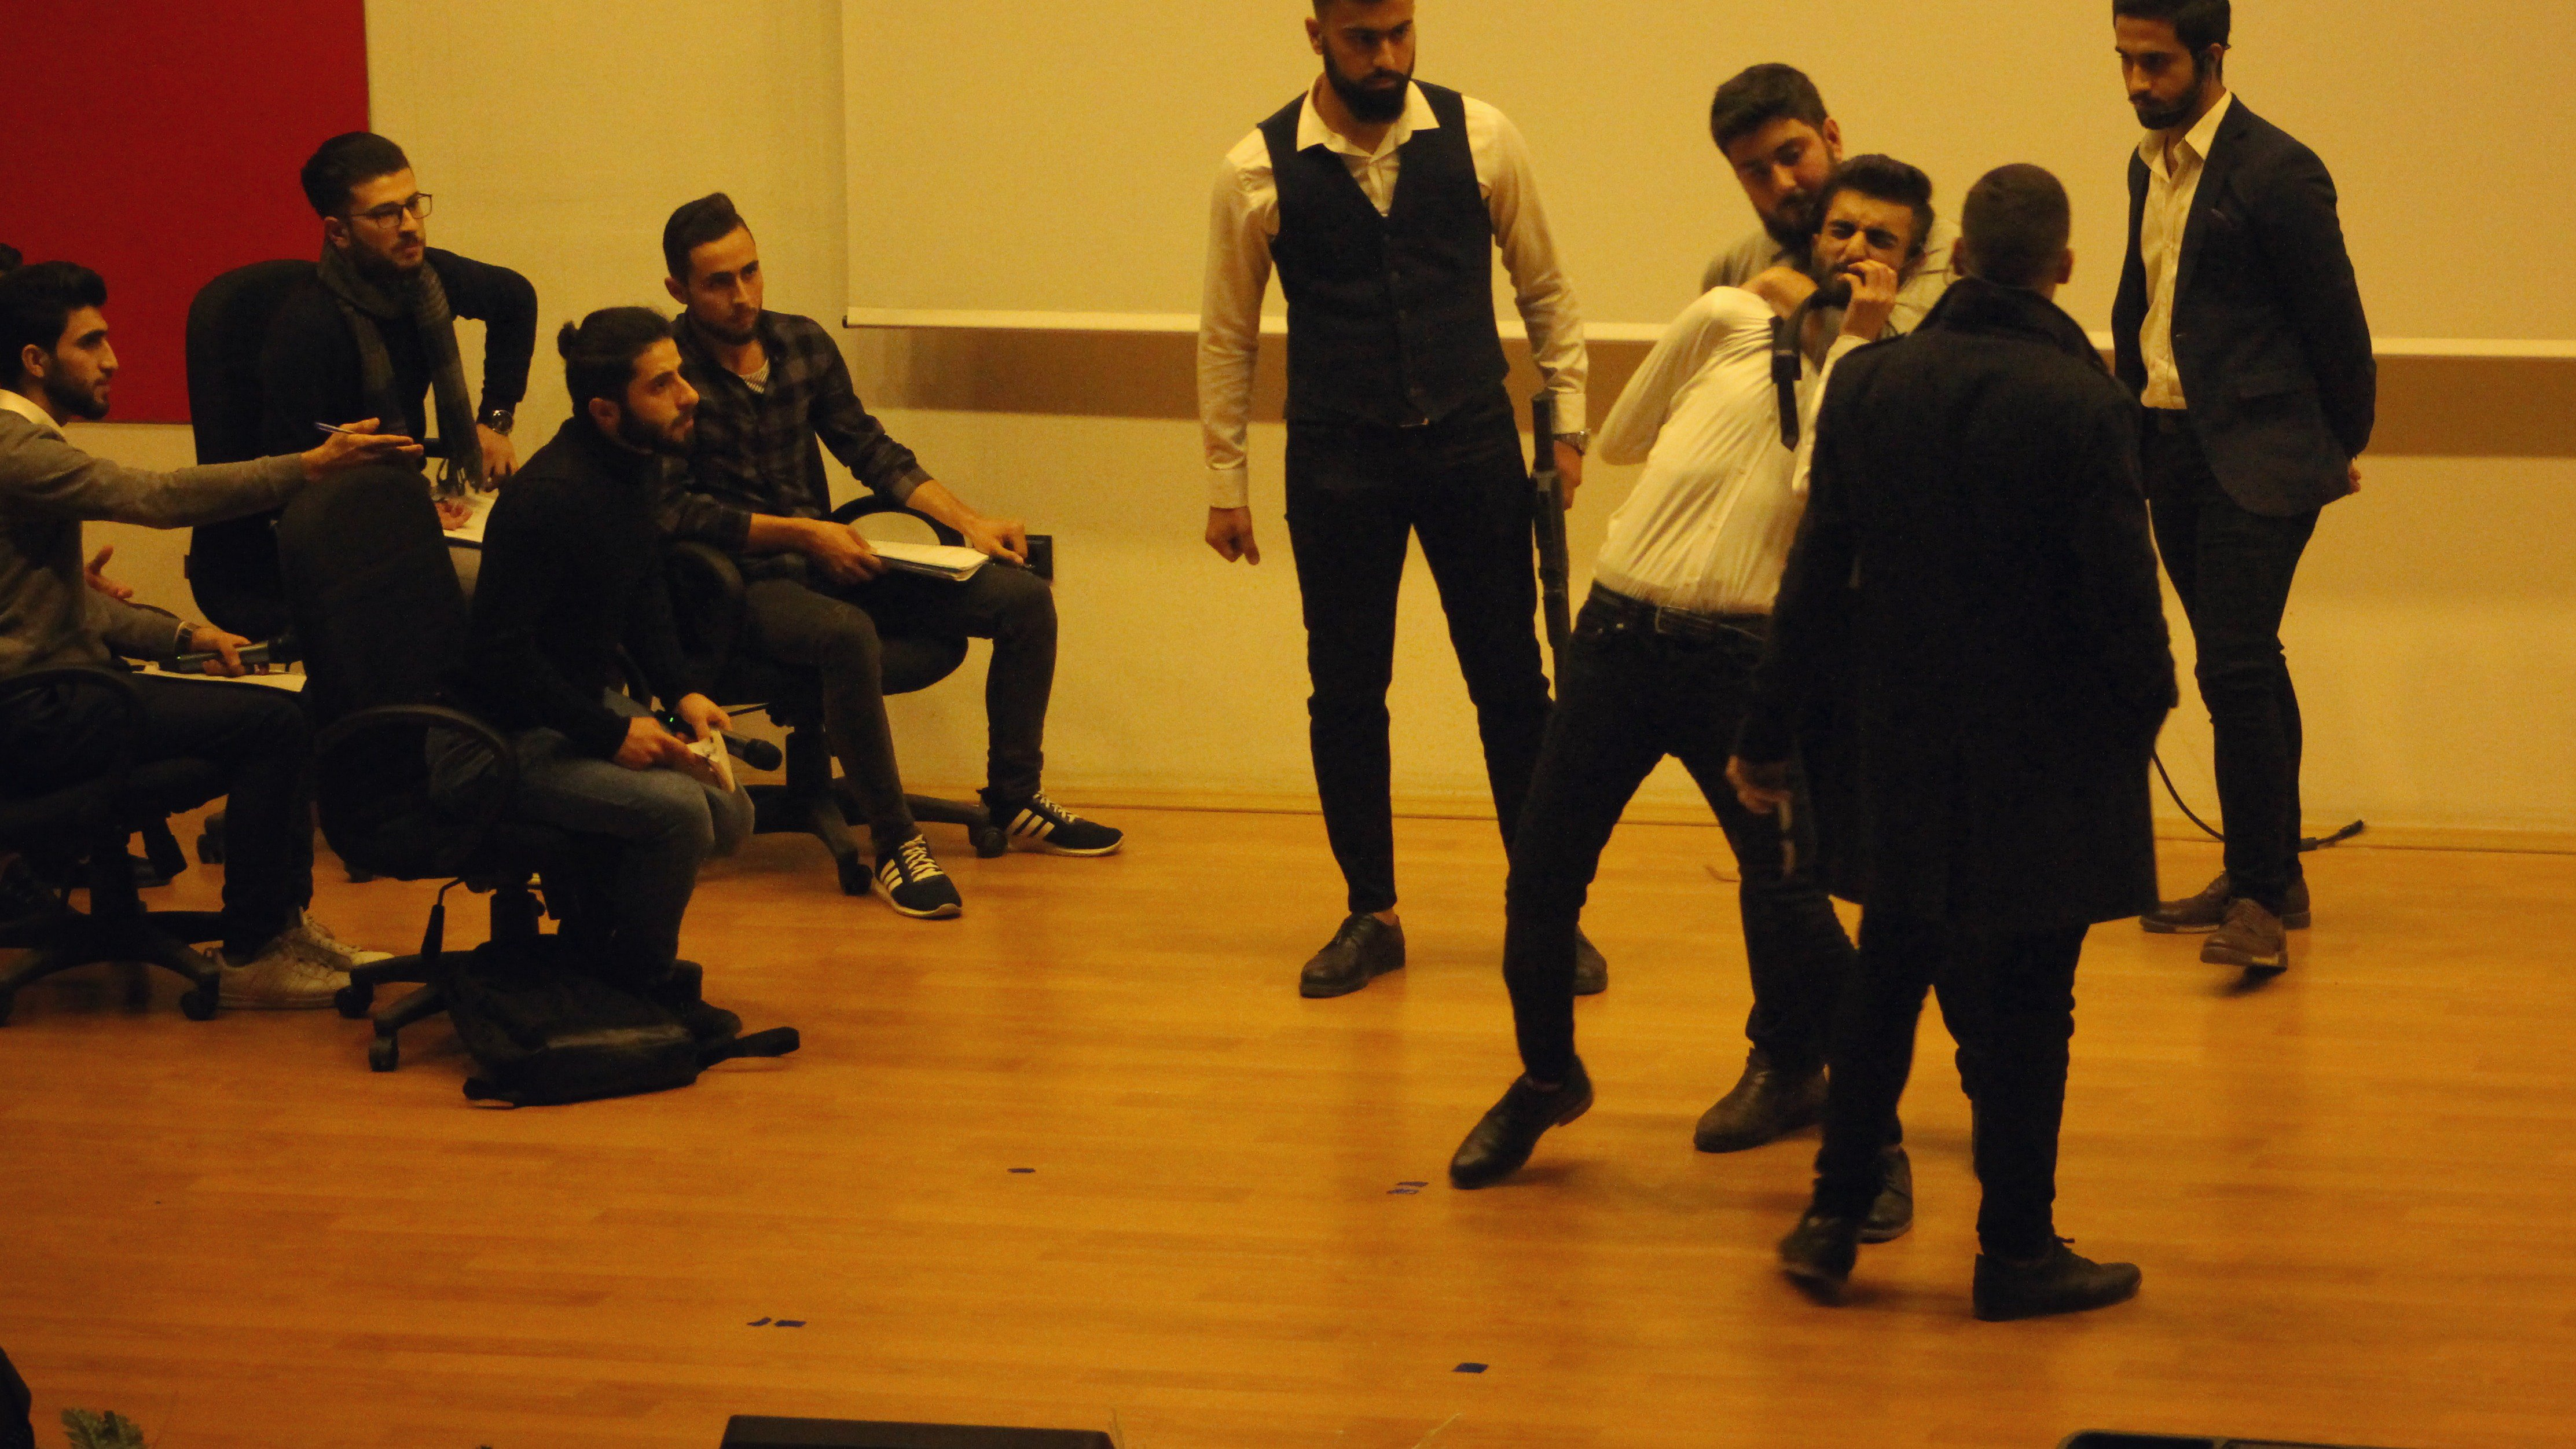 The Syrian Day at Konya Technical University. Students recalling Syrian national heritage